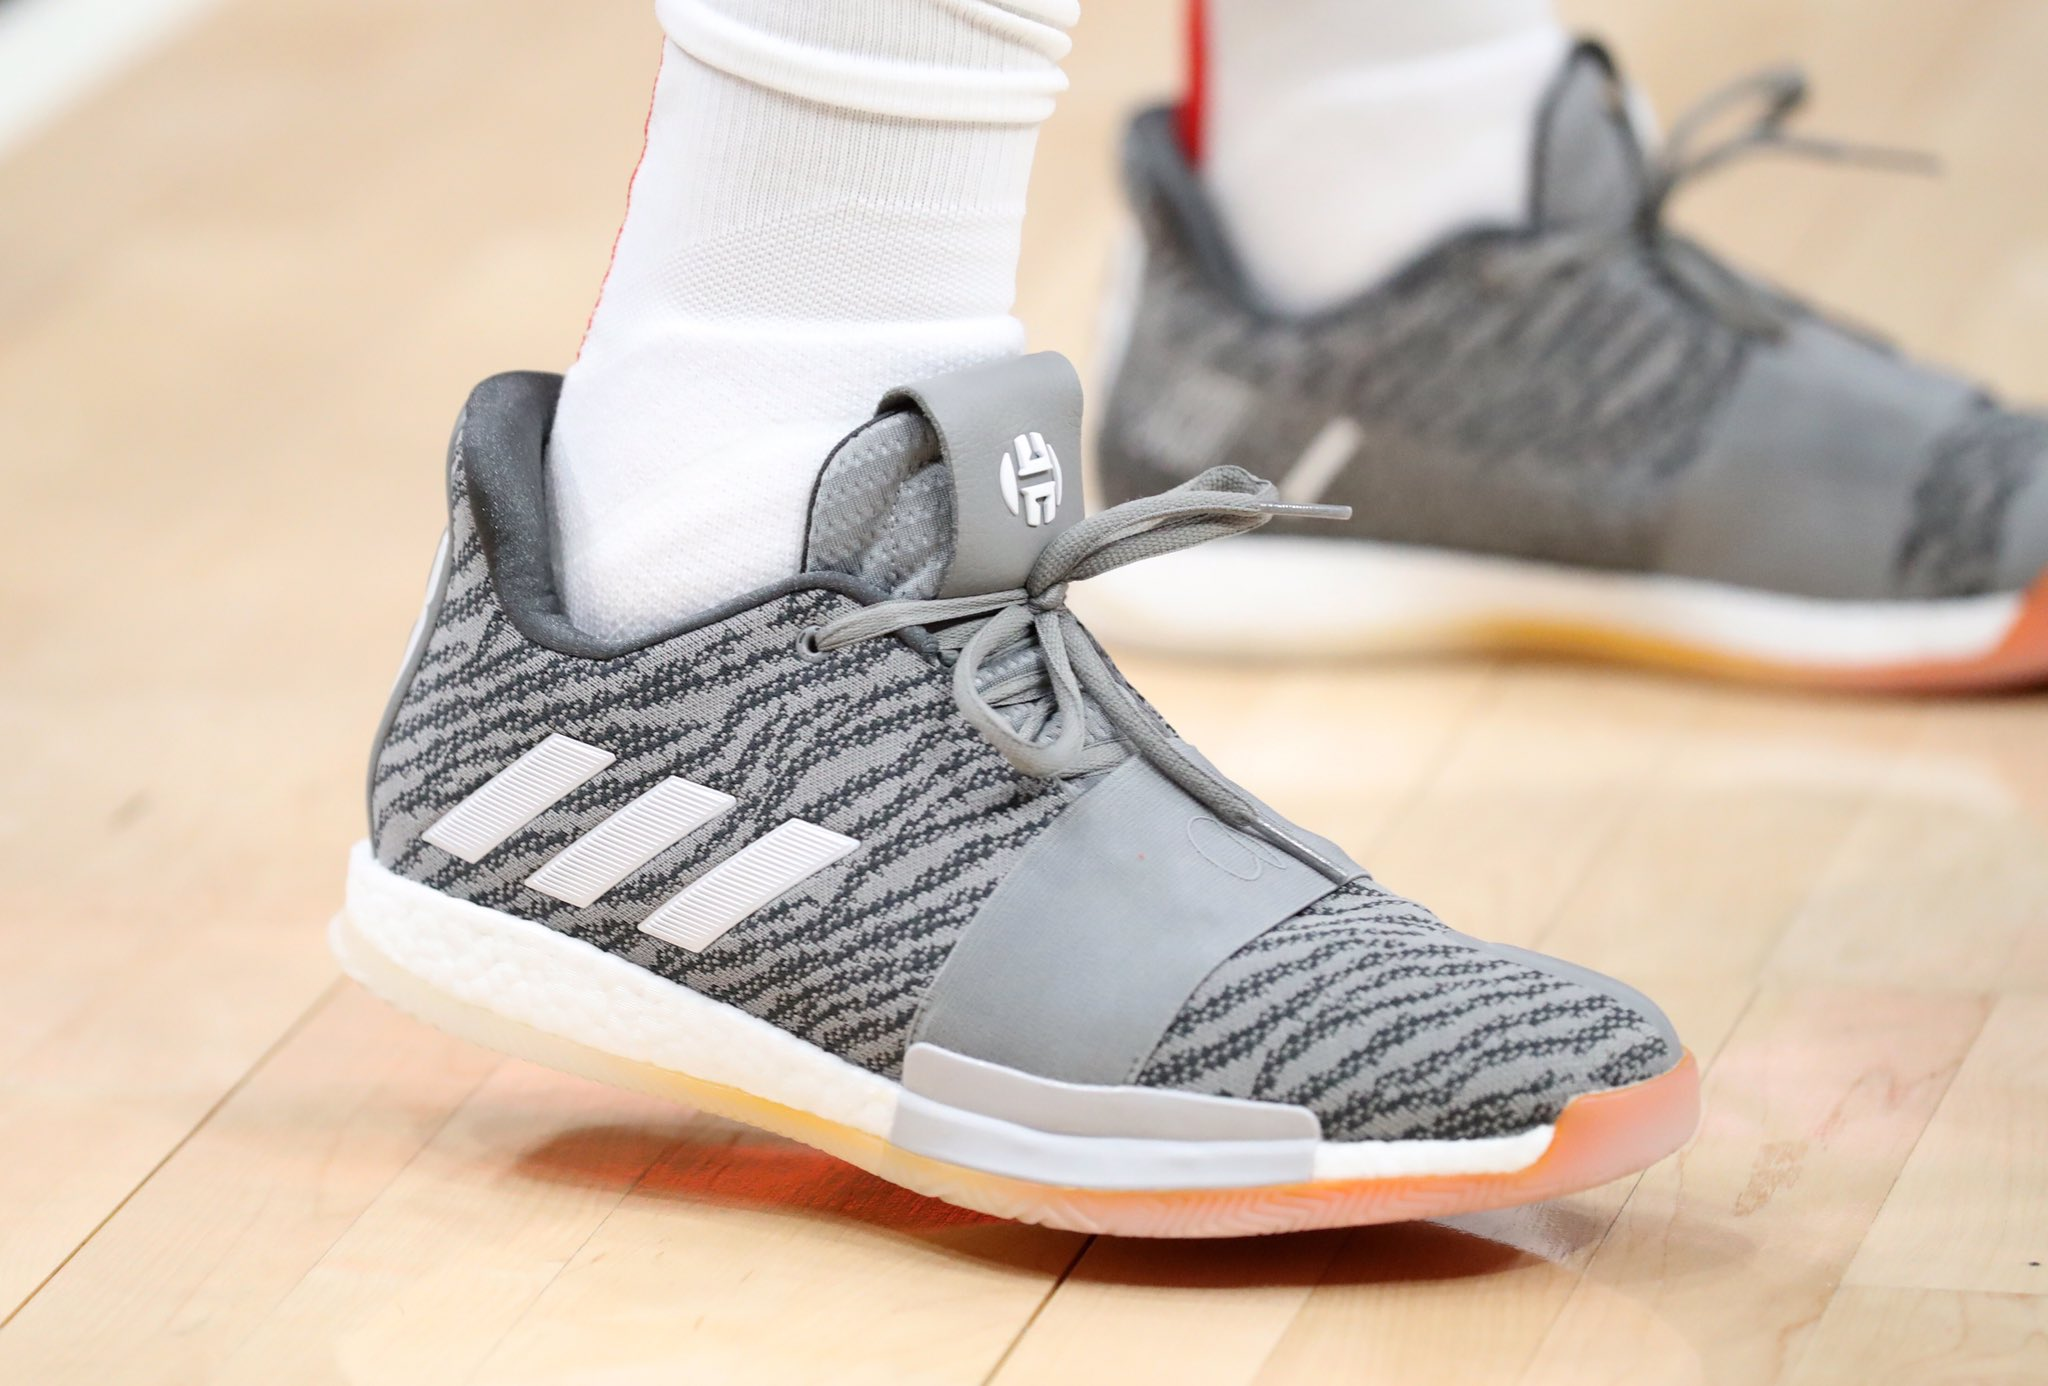 James Harden scores 38 points rocking his Adidas Harden Vol. 3 - Houston Rockets vs. Atlanta Hawks | March 19, 201938 Points10 Assists8 Rebounds1 Steal8-18 Shooting